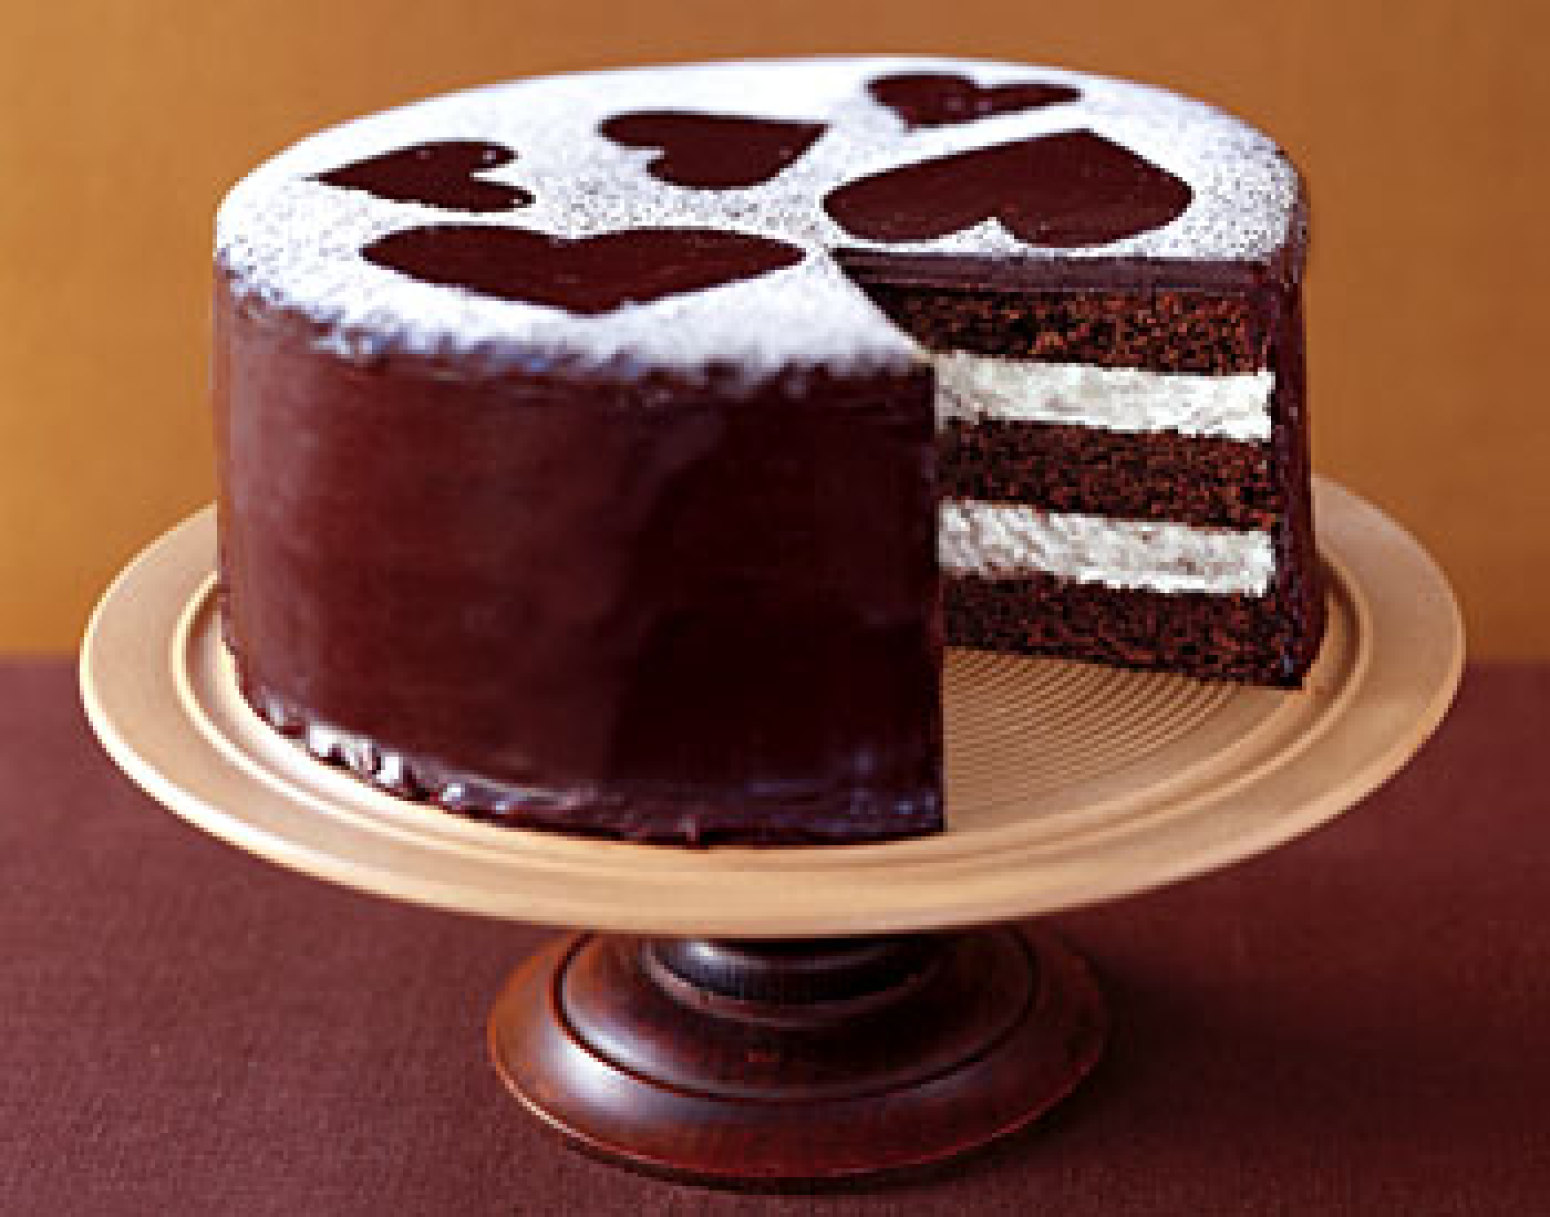 Semisweet Chocolate Layer Cake with Vanilla Cream Filling ...